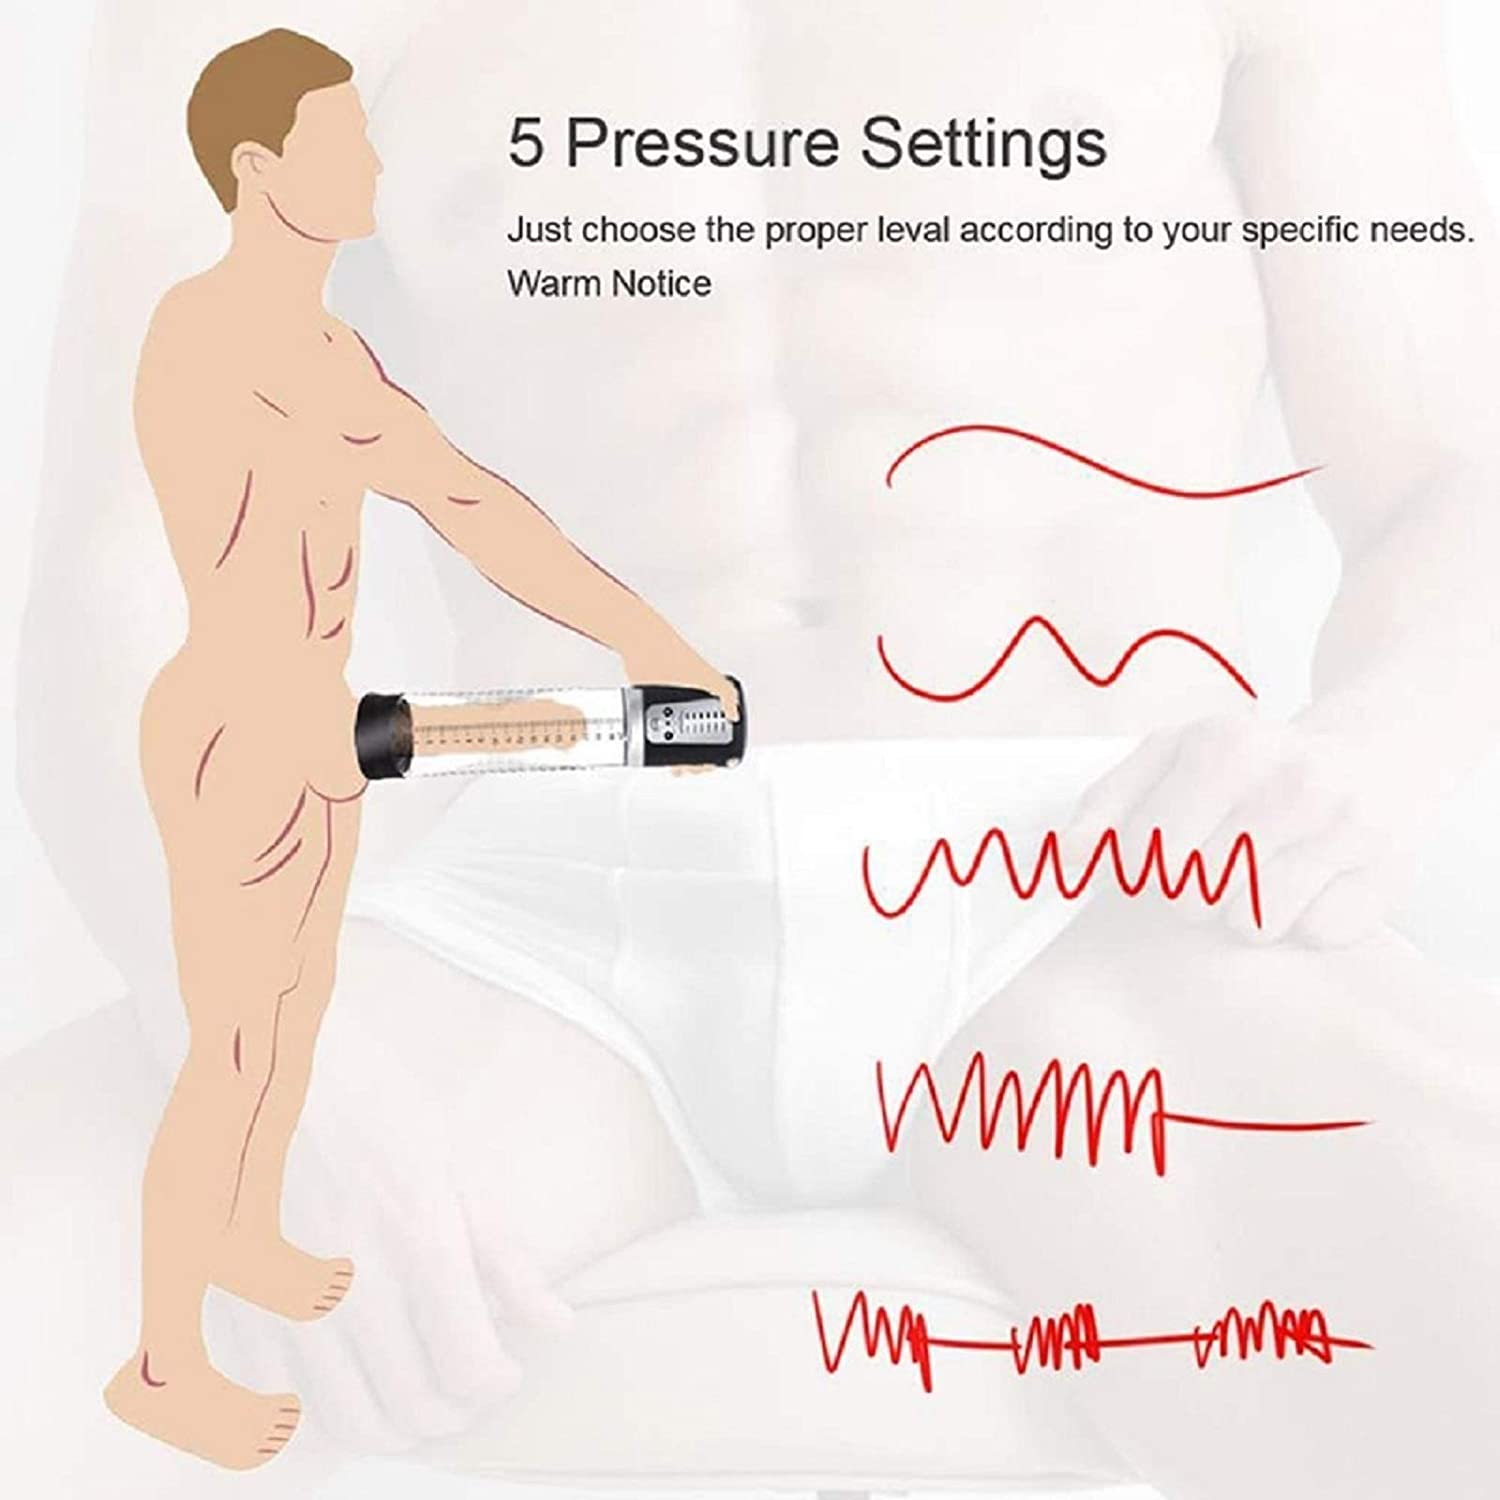 Electric Male High-Pressures P/ênīs Vacuum Pump Hand-held Expand Timing and Growth The Size Strength